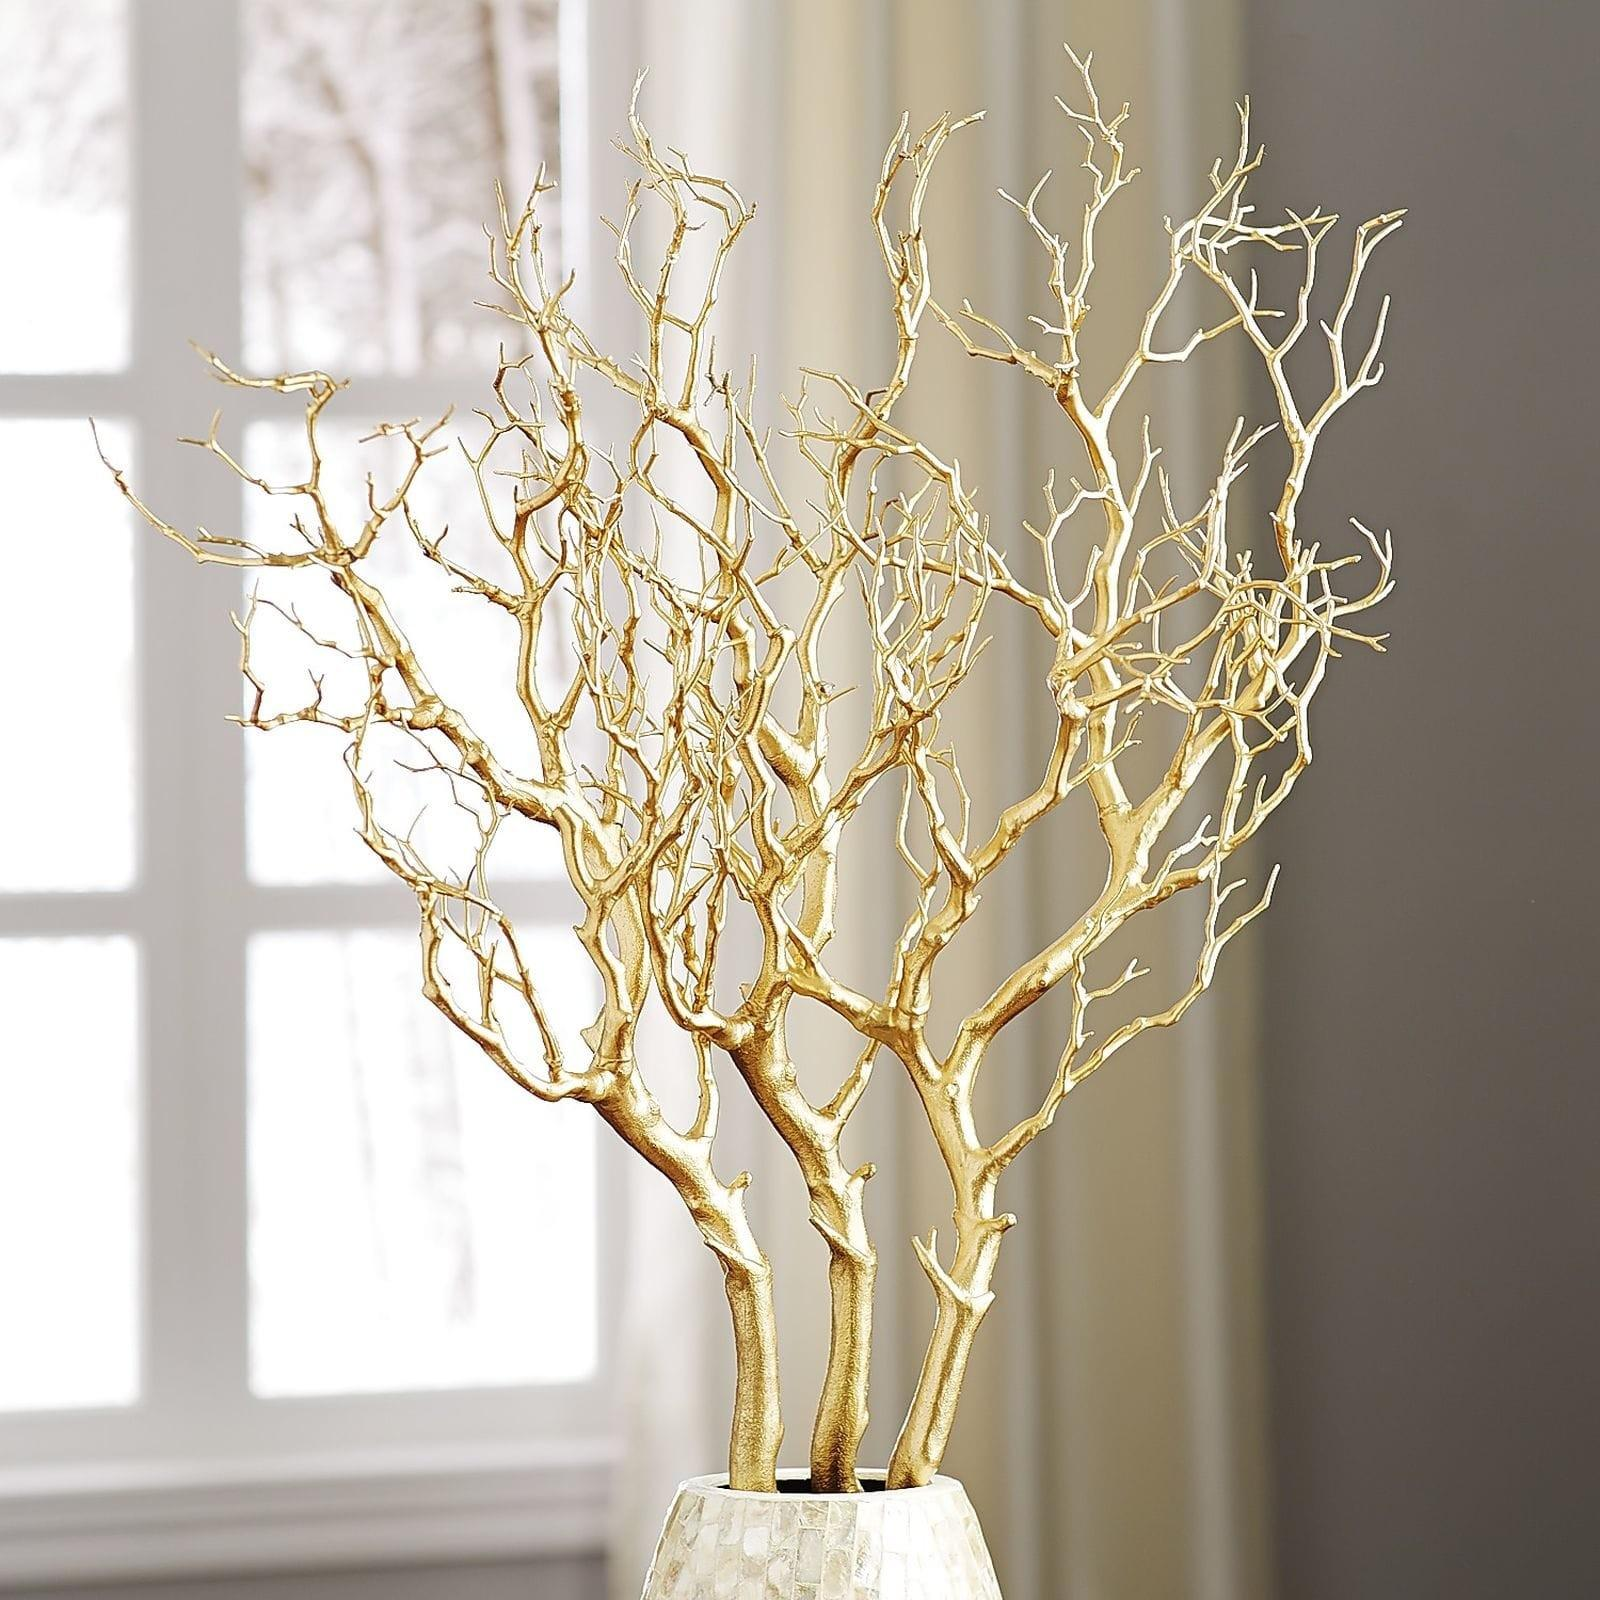 Metallic Gold Branch Pier Imports